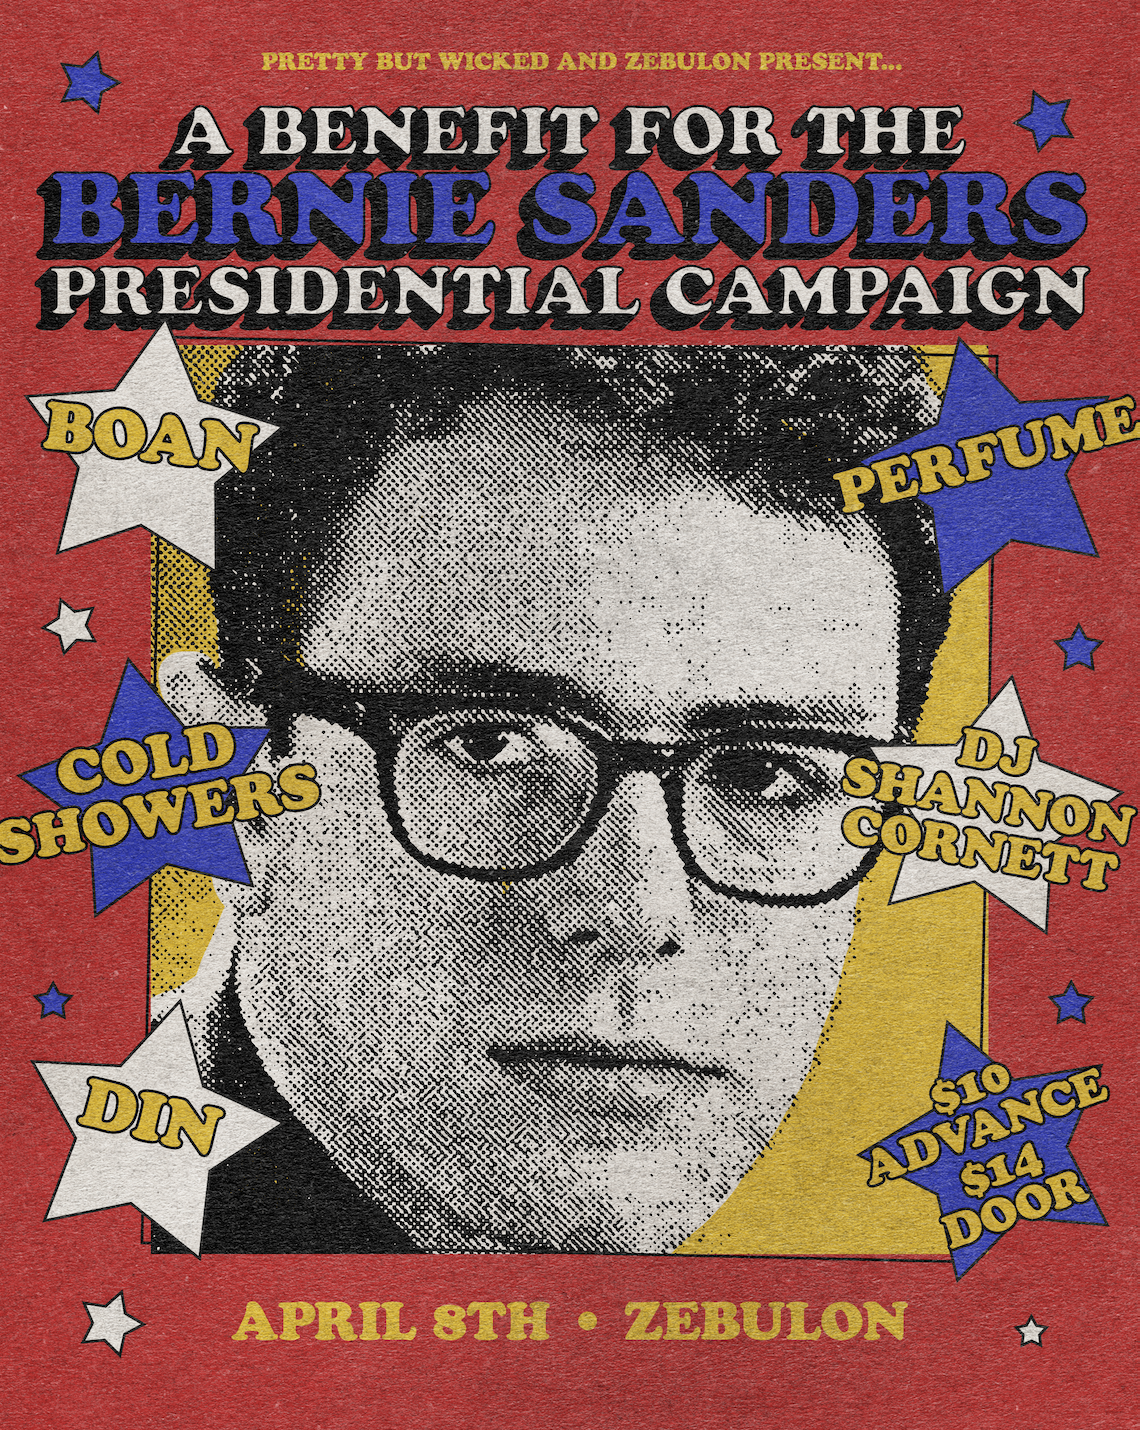 A Bernie Sanders Benefit featuring BOAN, Cold Showers, Perfume, DIN